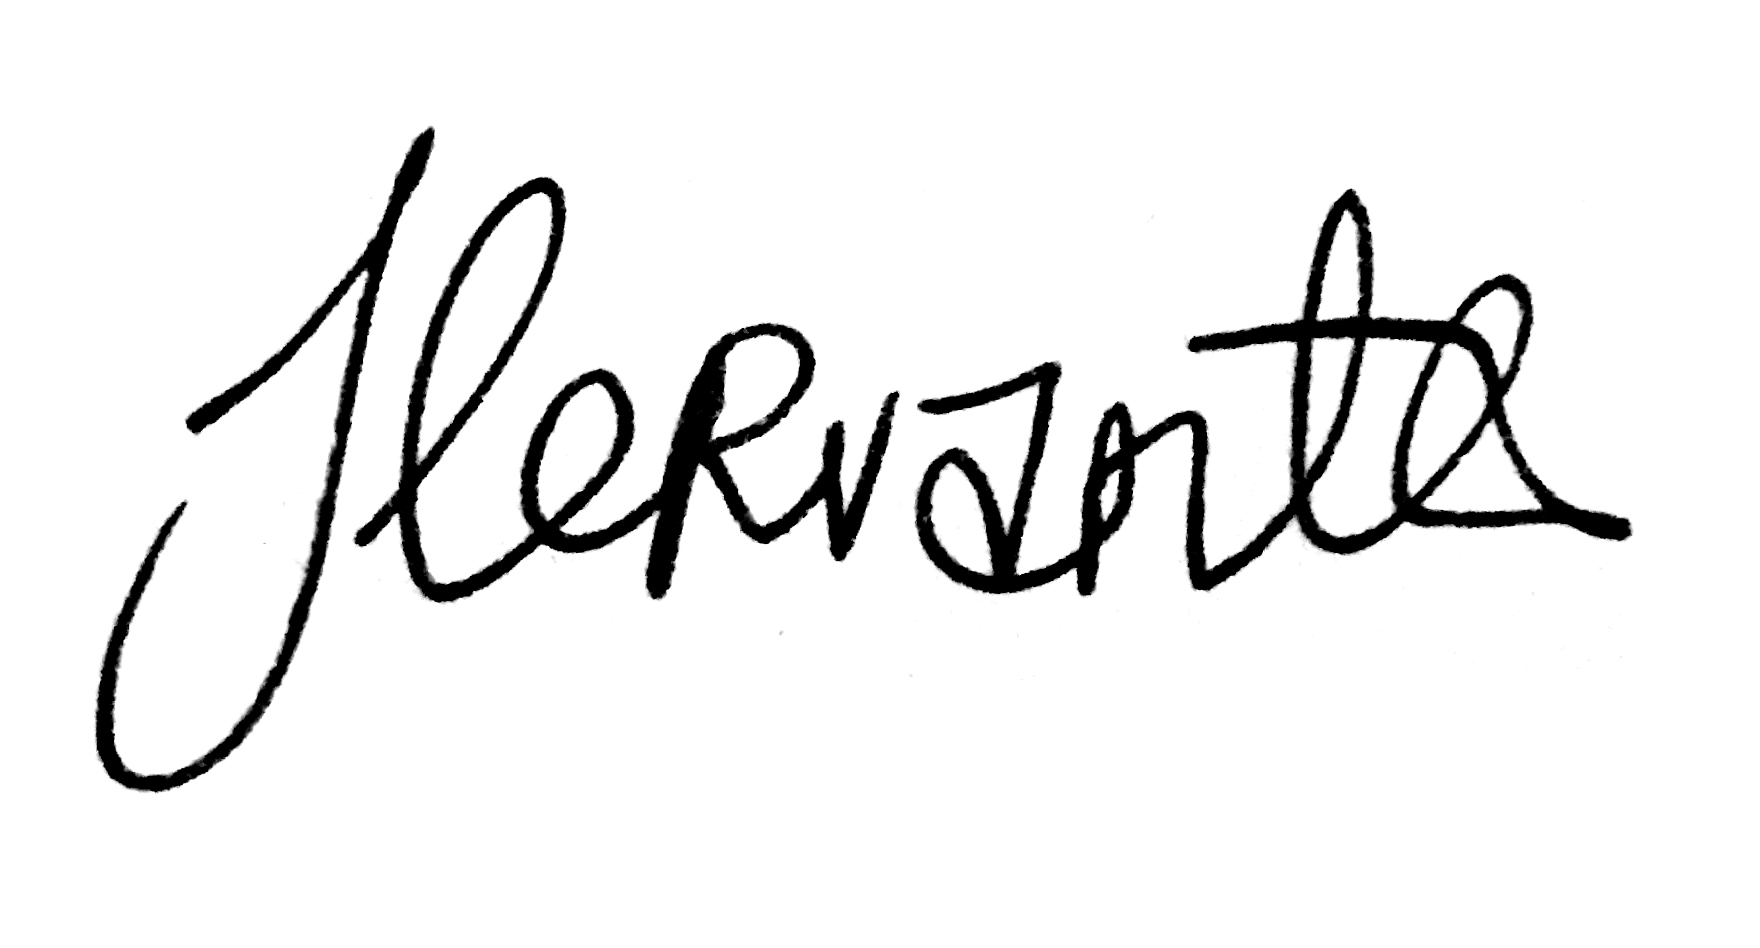 Jeffrey Cervantes Signature